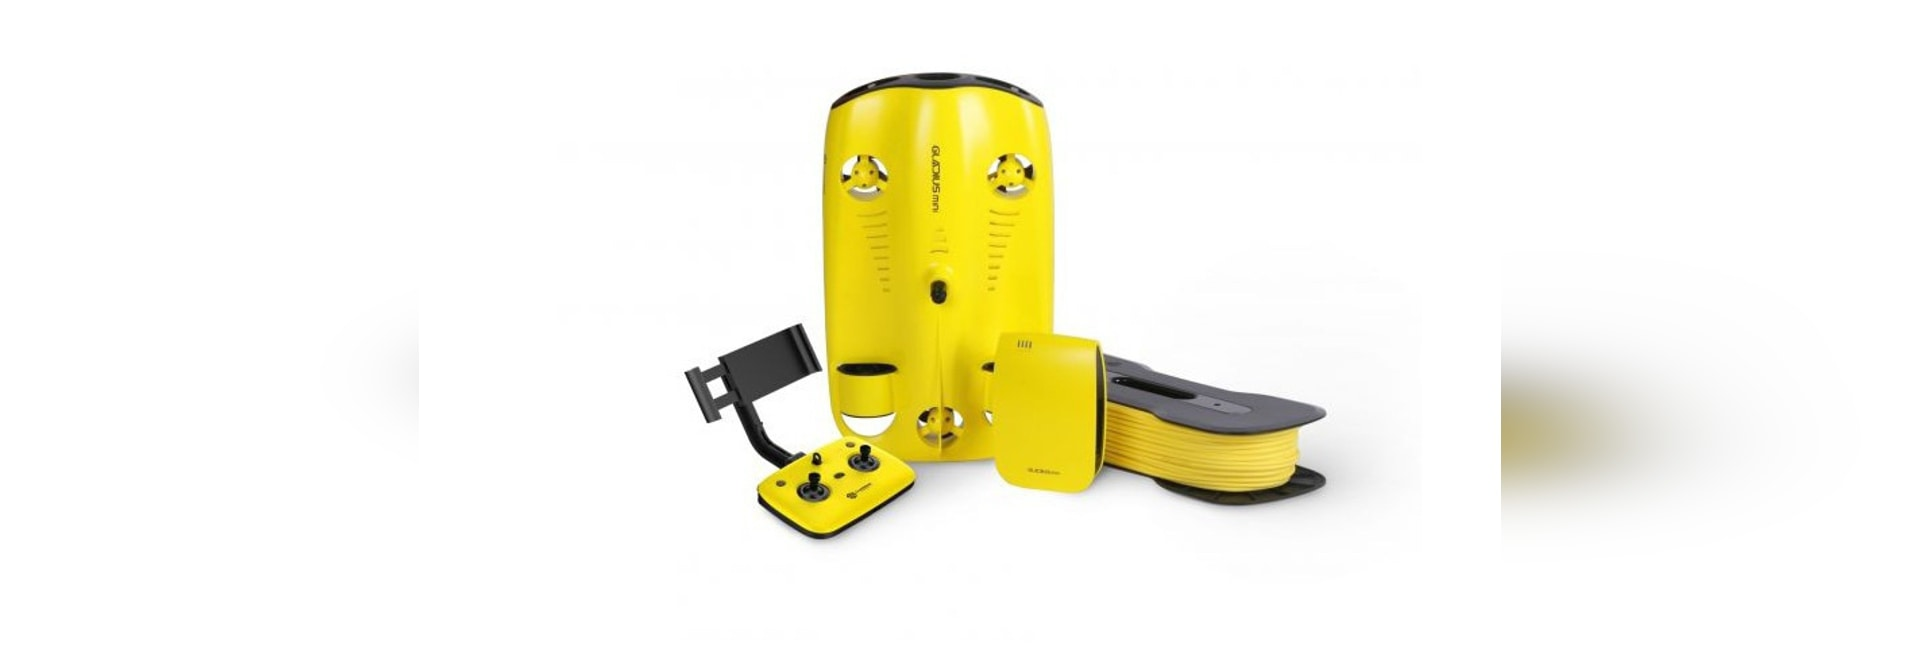 Chasing Innovation's new ROV with camera allows boat owners to conduct under water inspections Photo: Chasing Innovations